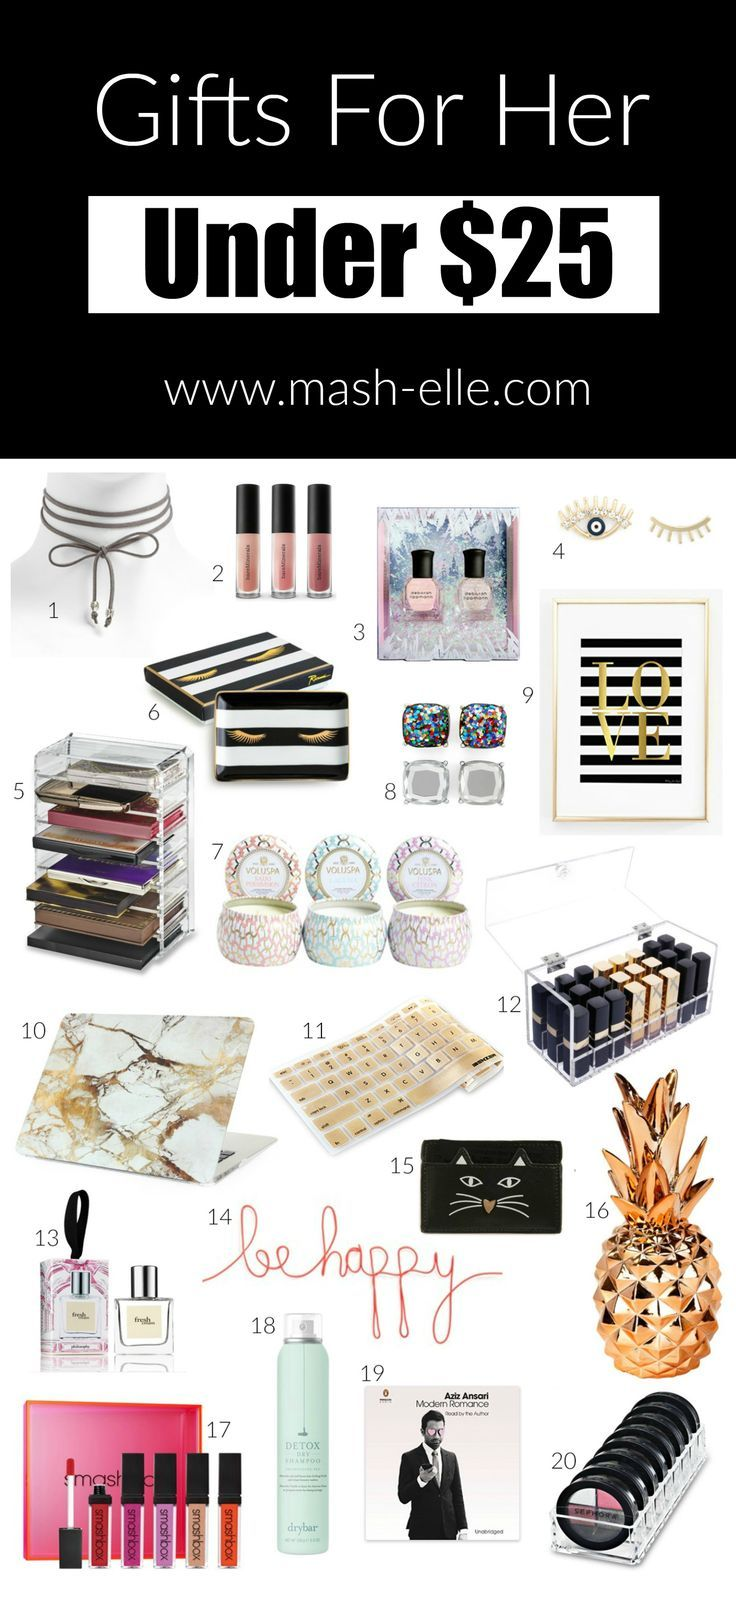 Chokers Acrylic Beauty Organizers This Gifts For Her Under 25 Has It All Fashion And Blogger Mash Elle Shares Affordable Gift Ideas The